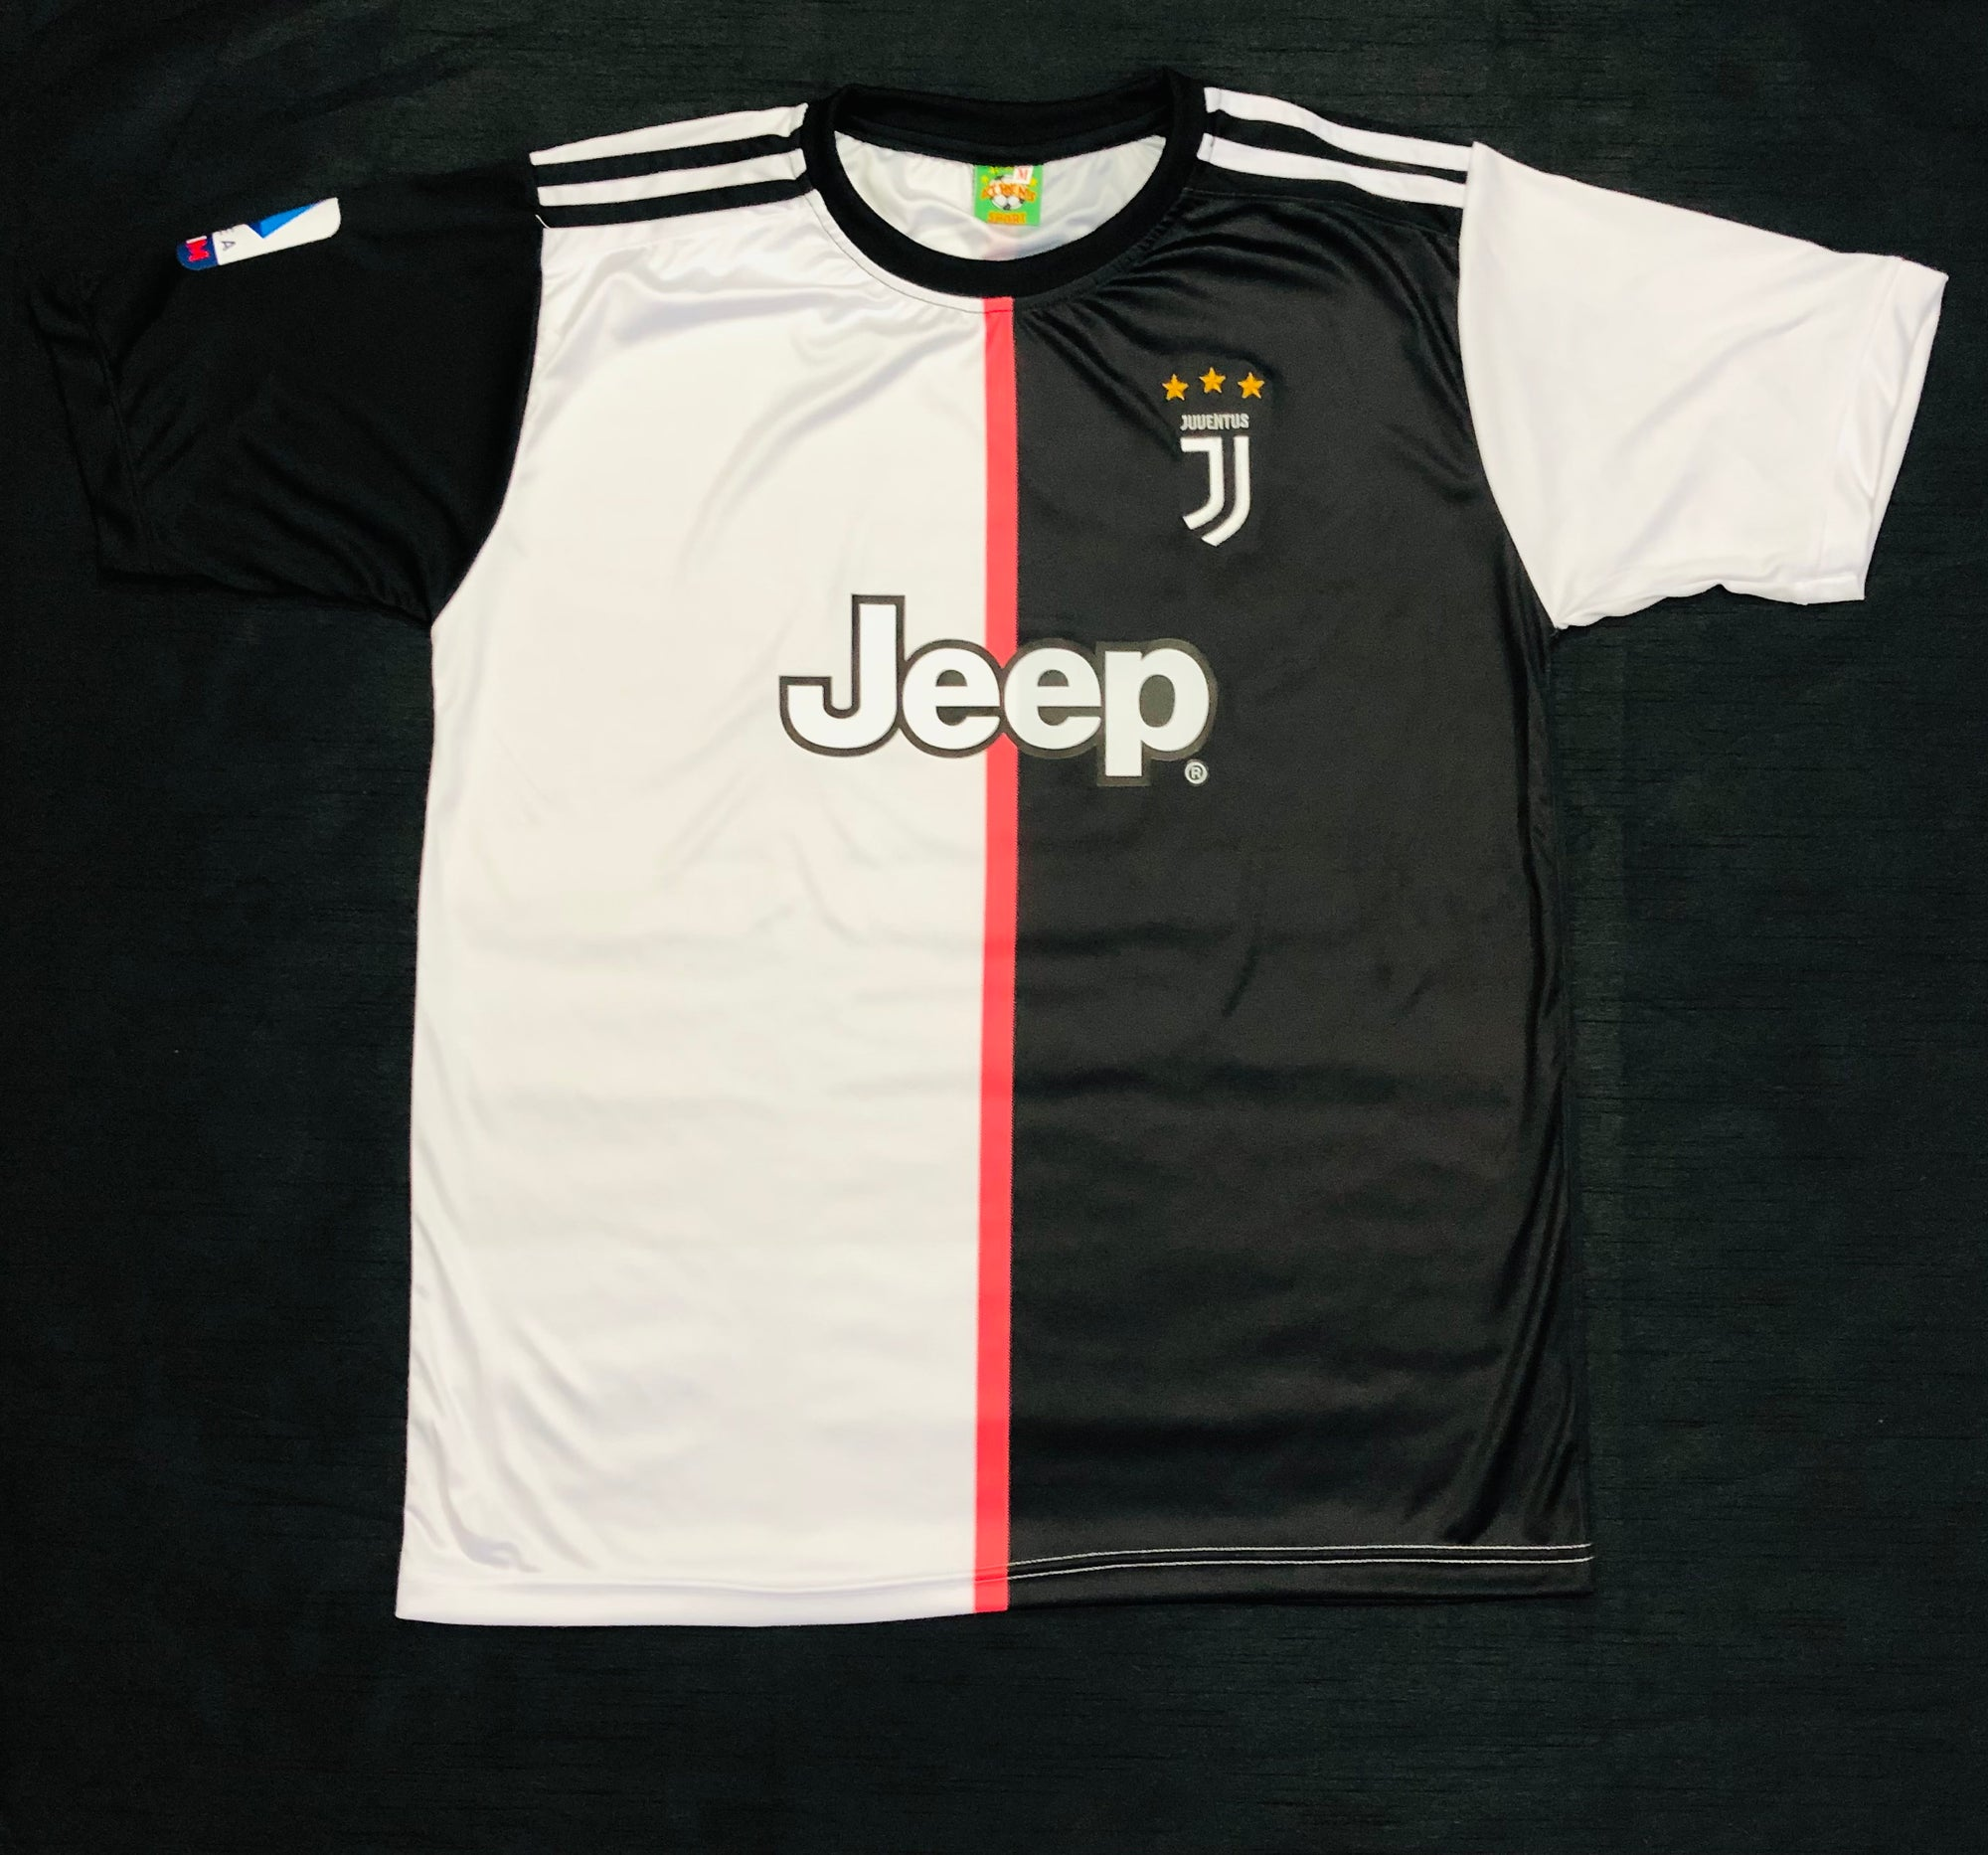 Juventus Home 2019/20 Adult Shirt ~ Replica Version